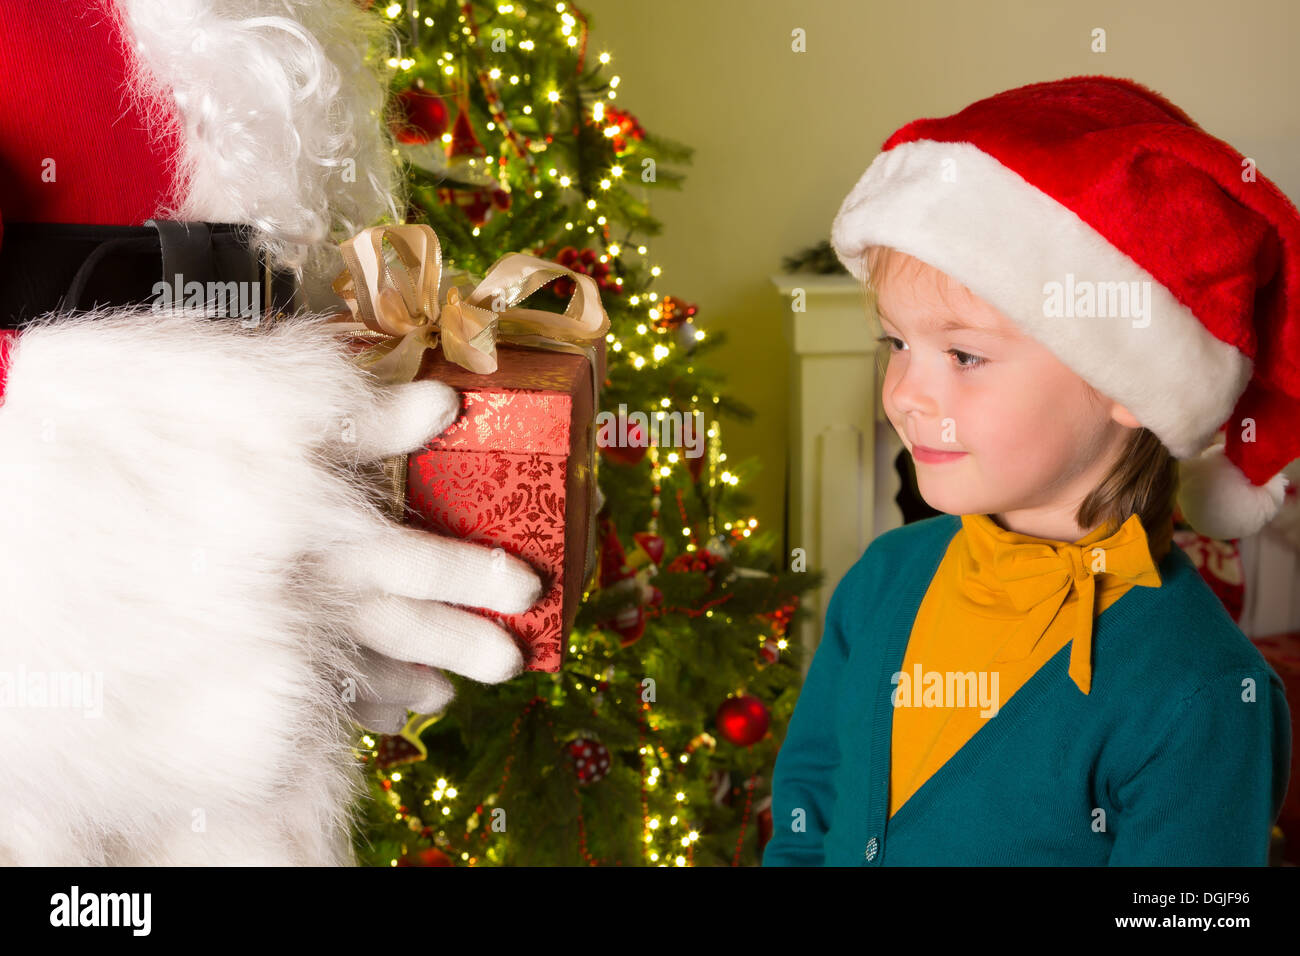 little 5 year old girl getting a red gift from santa claus